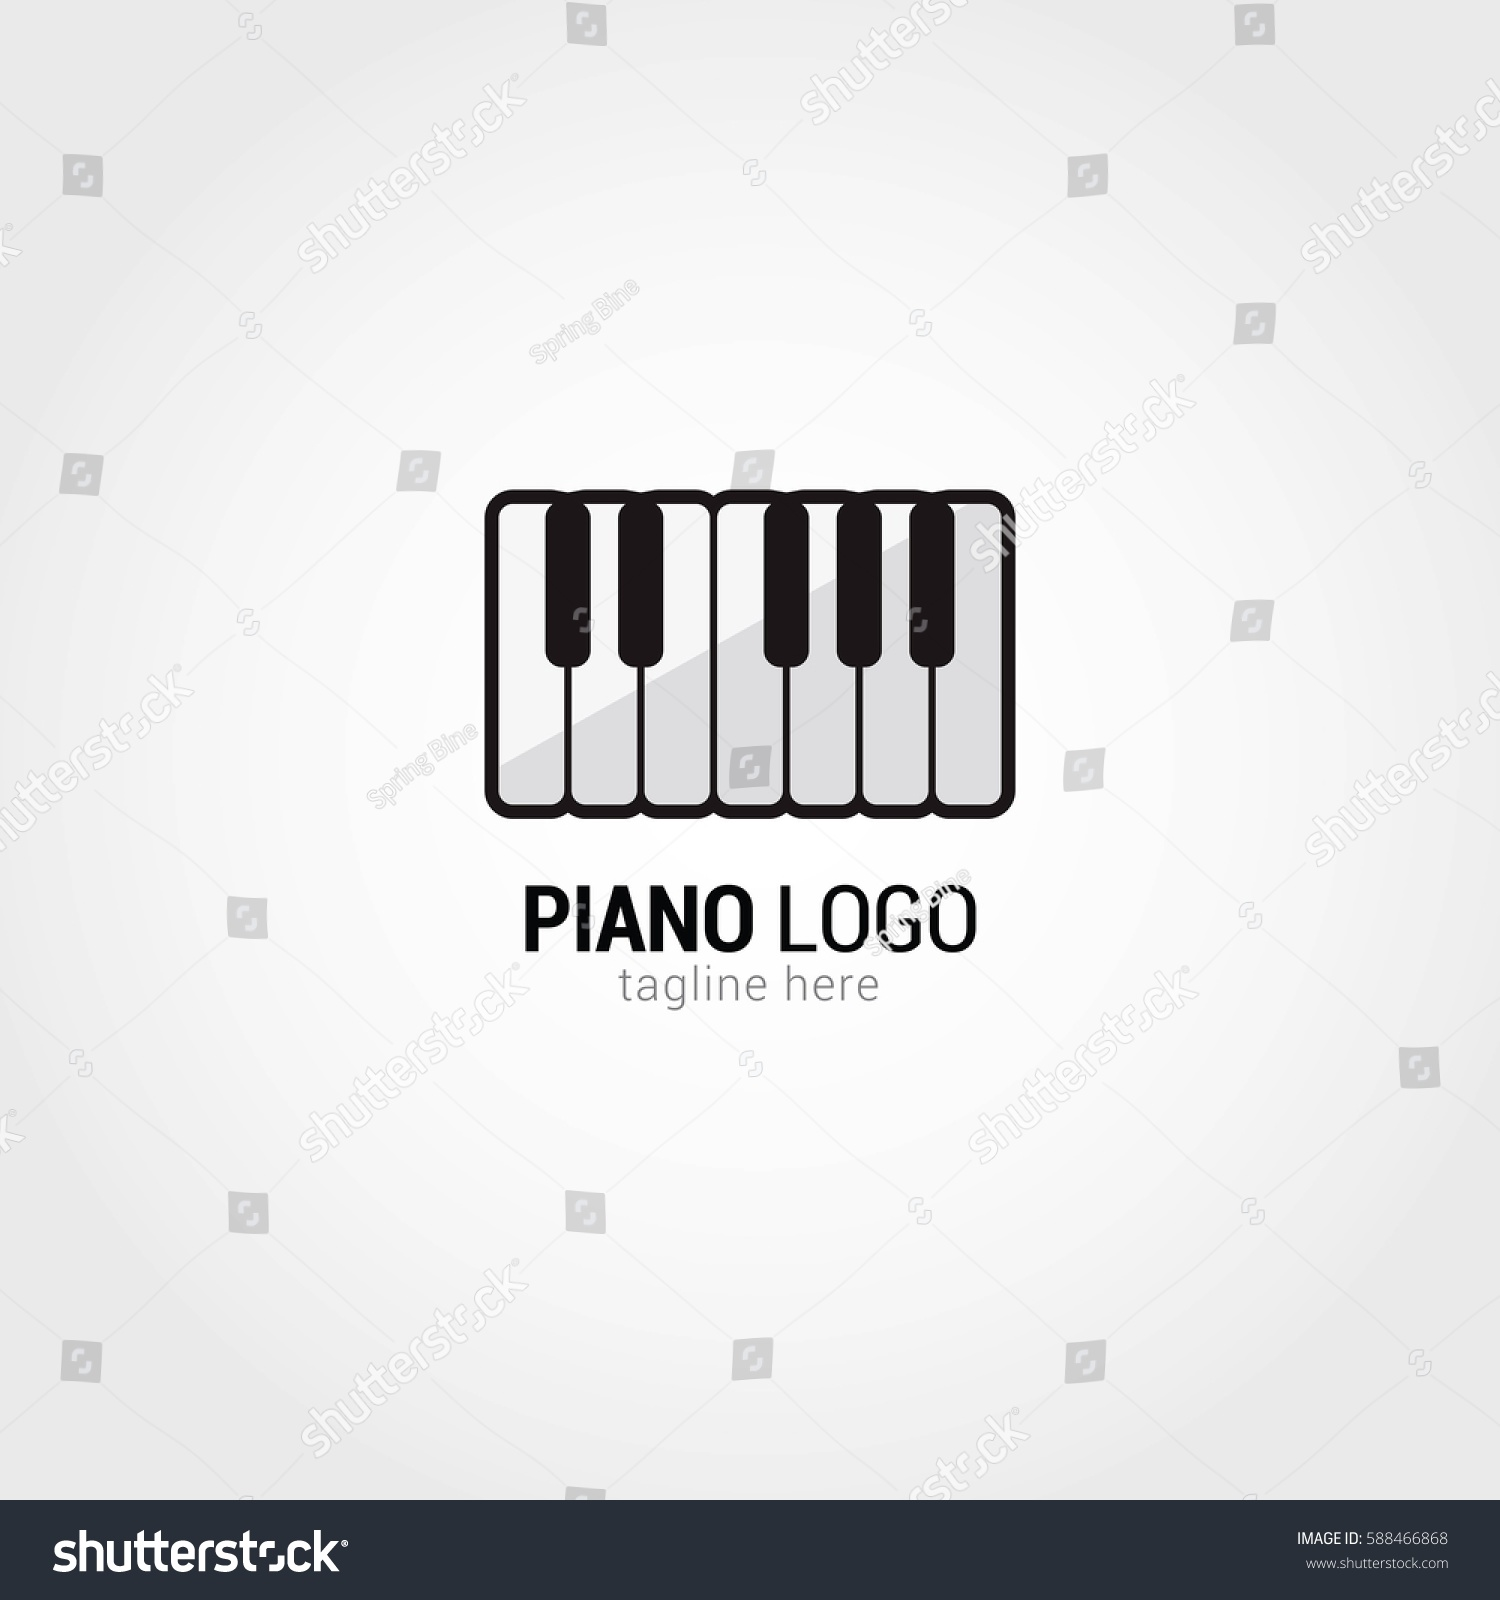 piano logo design template vector illustration stock vector 588466868 shutterstock. Black Bedroom Furniture Sets. Home Design Ideas